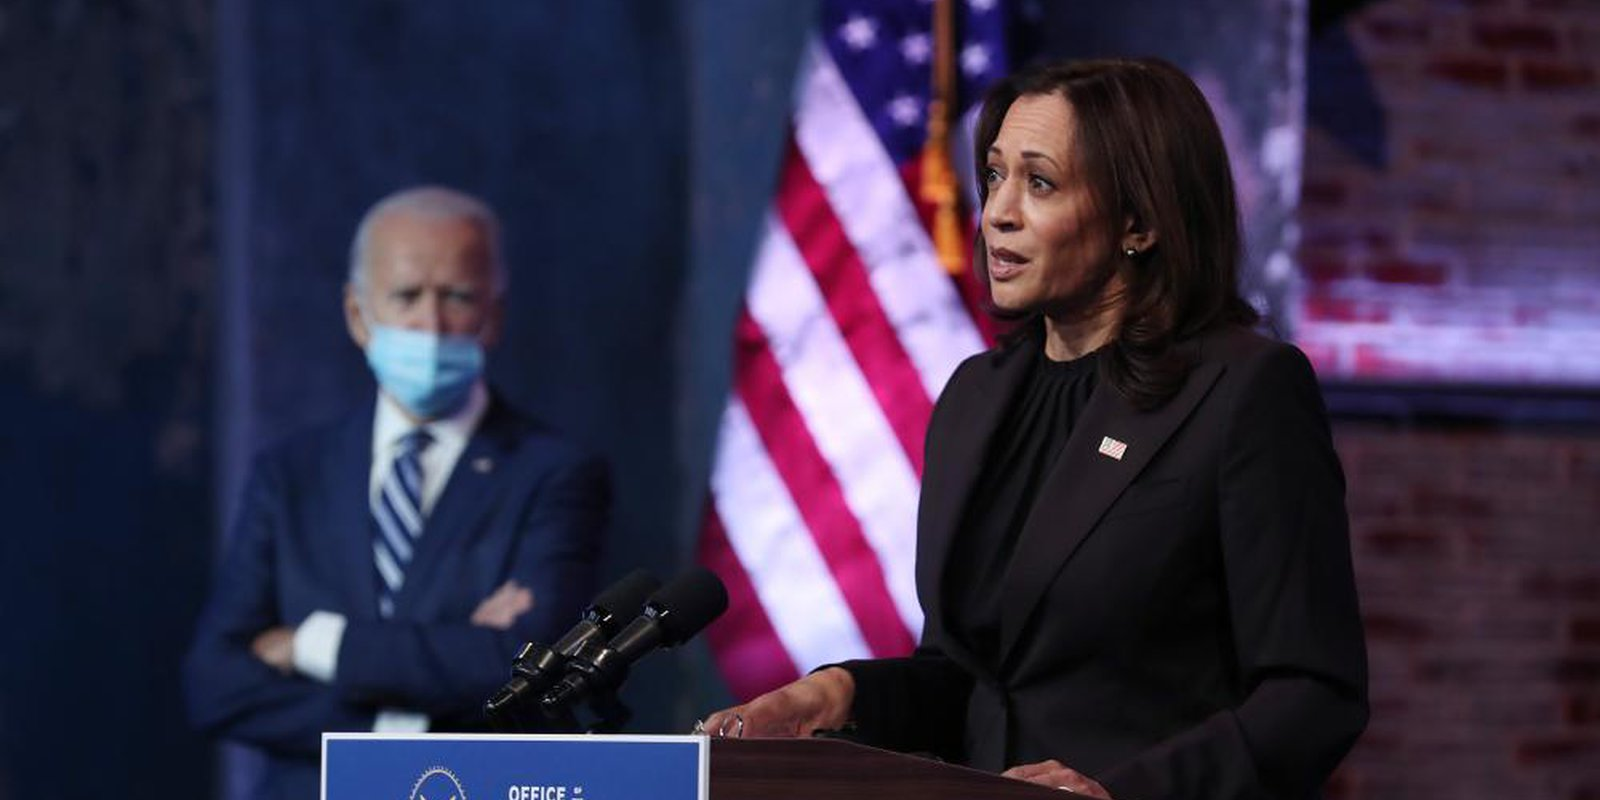 Image — Vice president-elect Kamala Harris addresses the media on November 10, 2020 at the Queen Theater in Wilmington, Delaware. Photo by Joe Raedle/Getty Images.